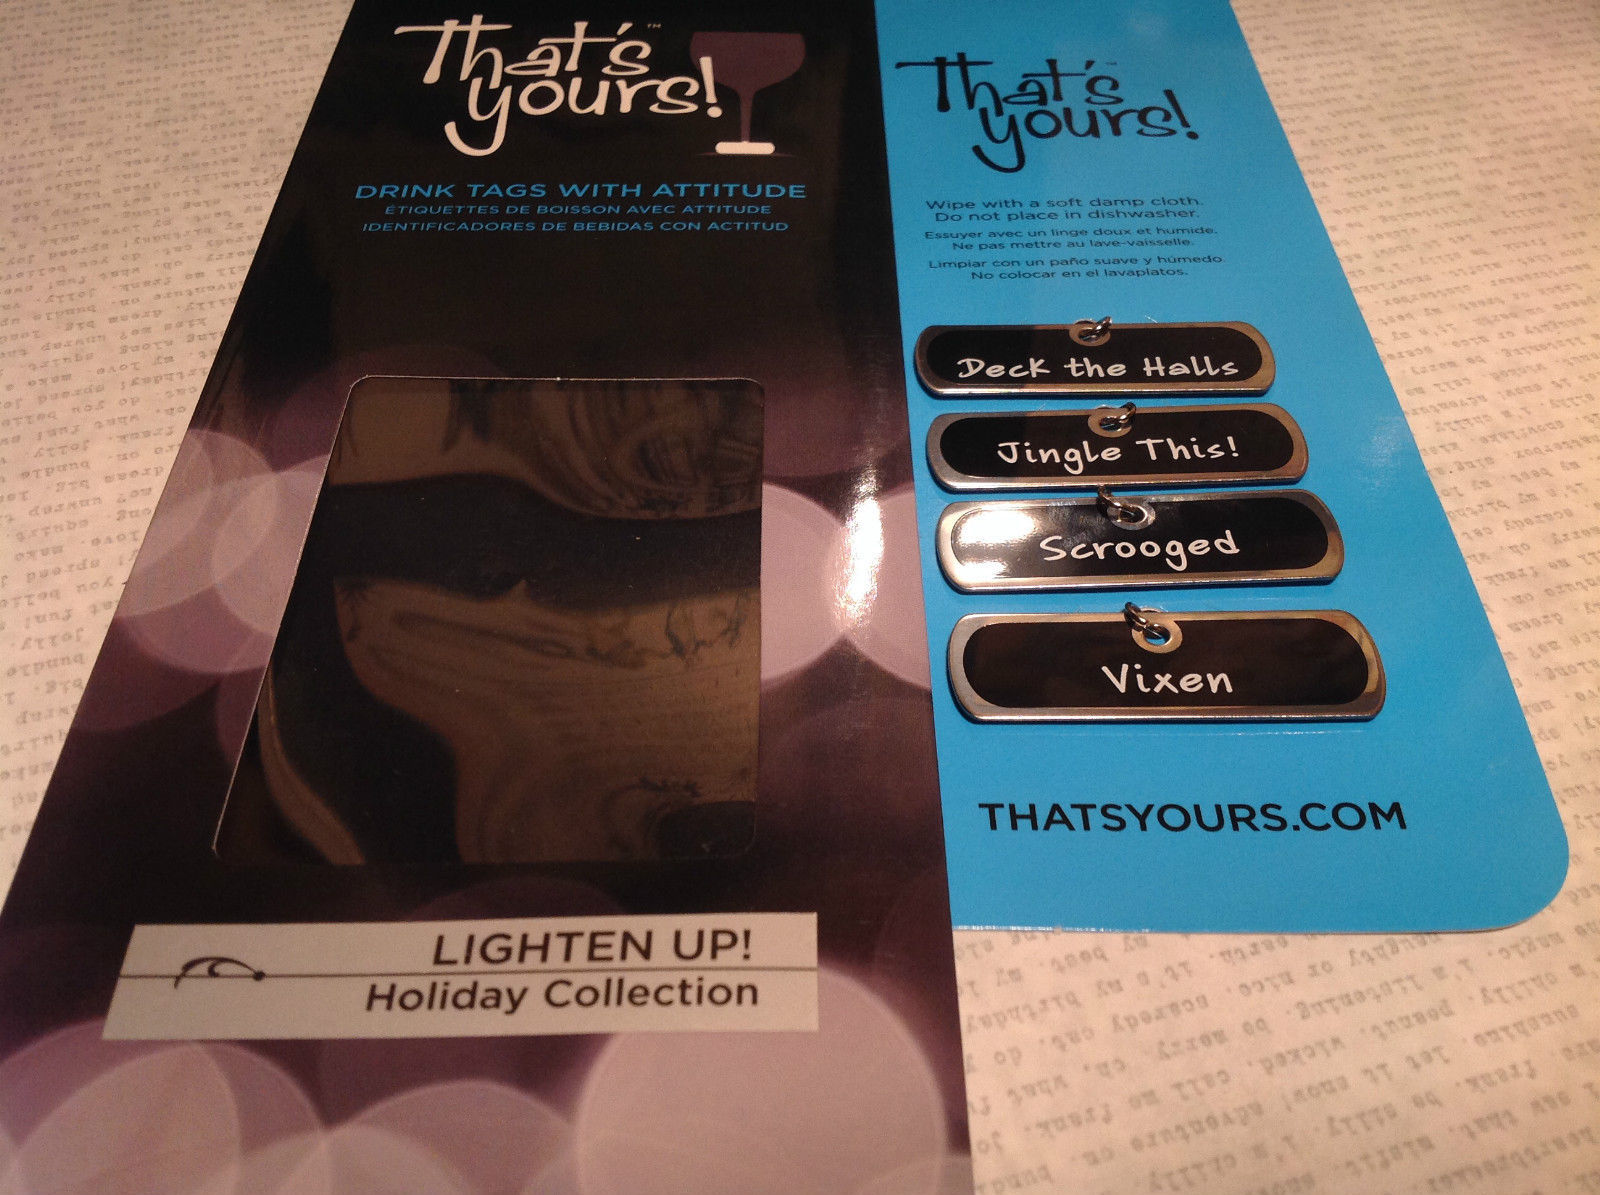 Lighten Up Holiday Collection Drink Tags With Attitude for Wine Glasses Scrooged